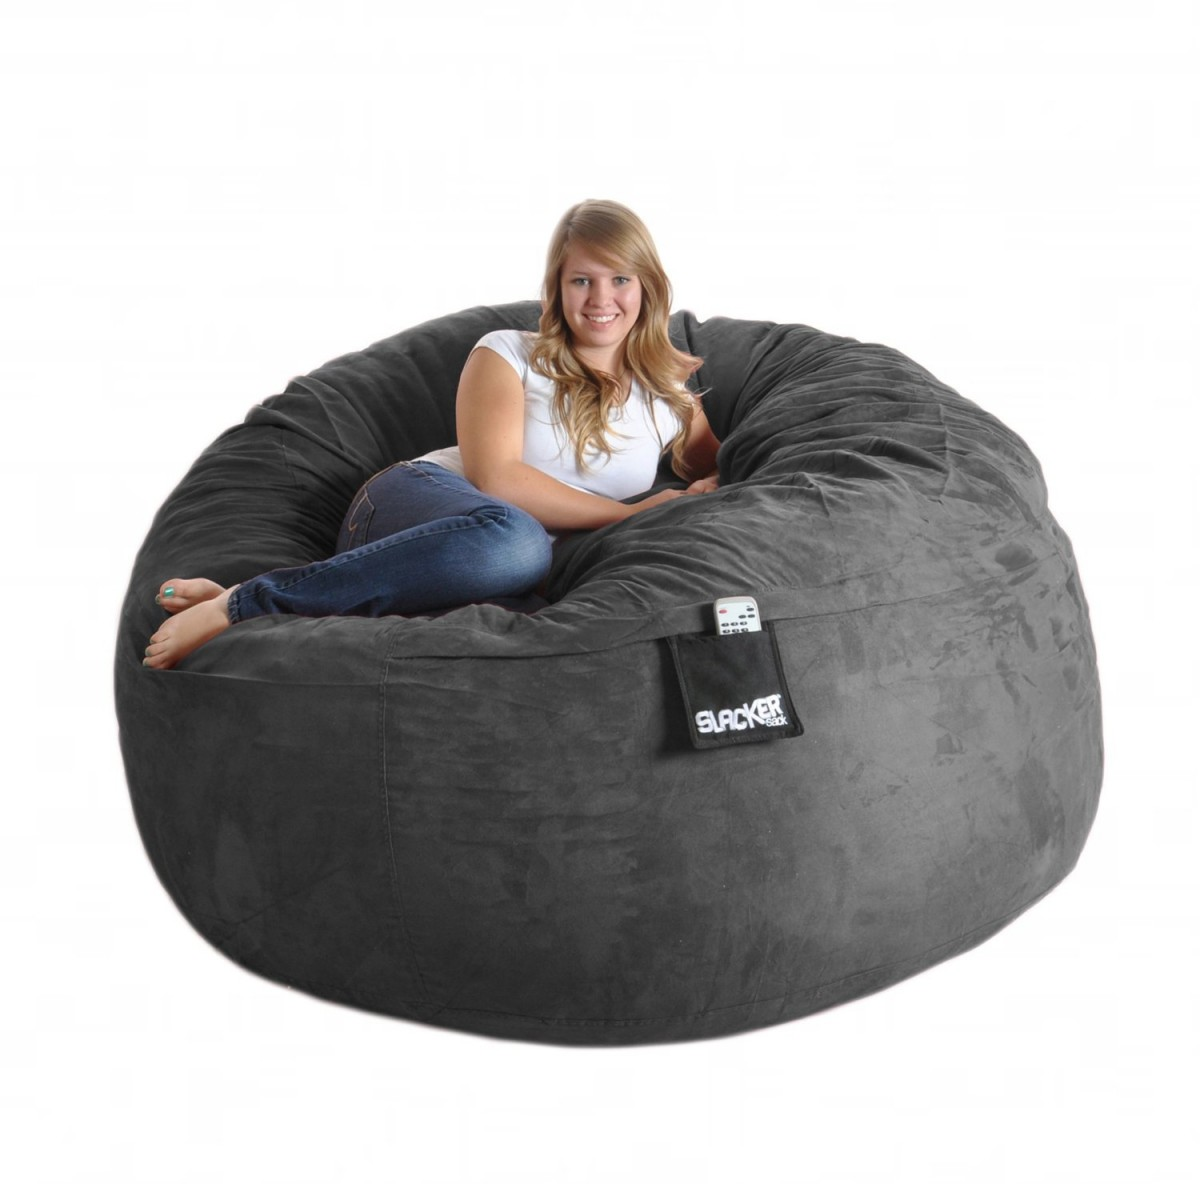 big bean bag chair